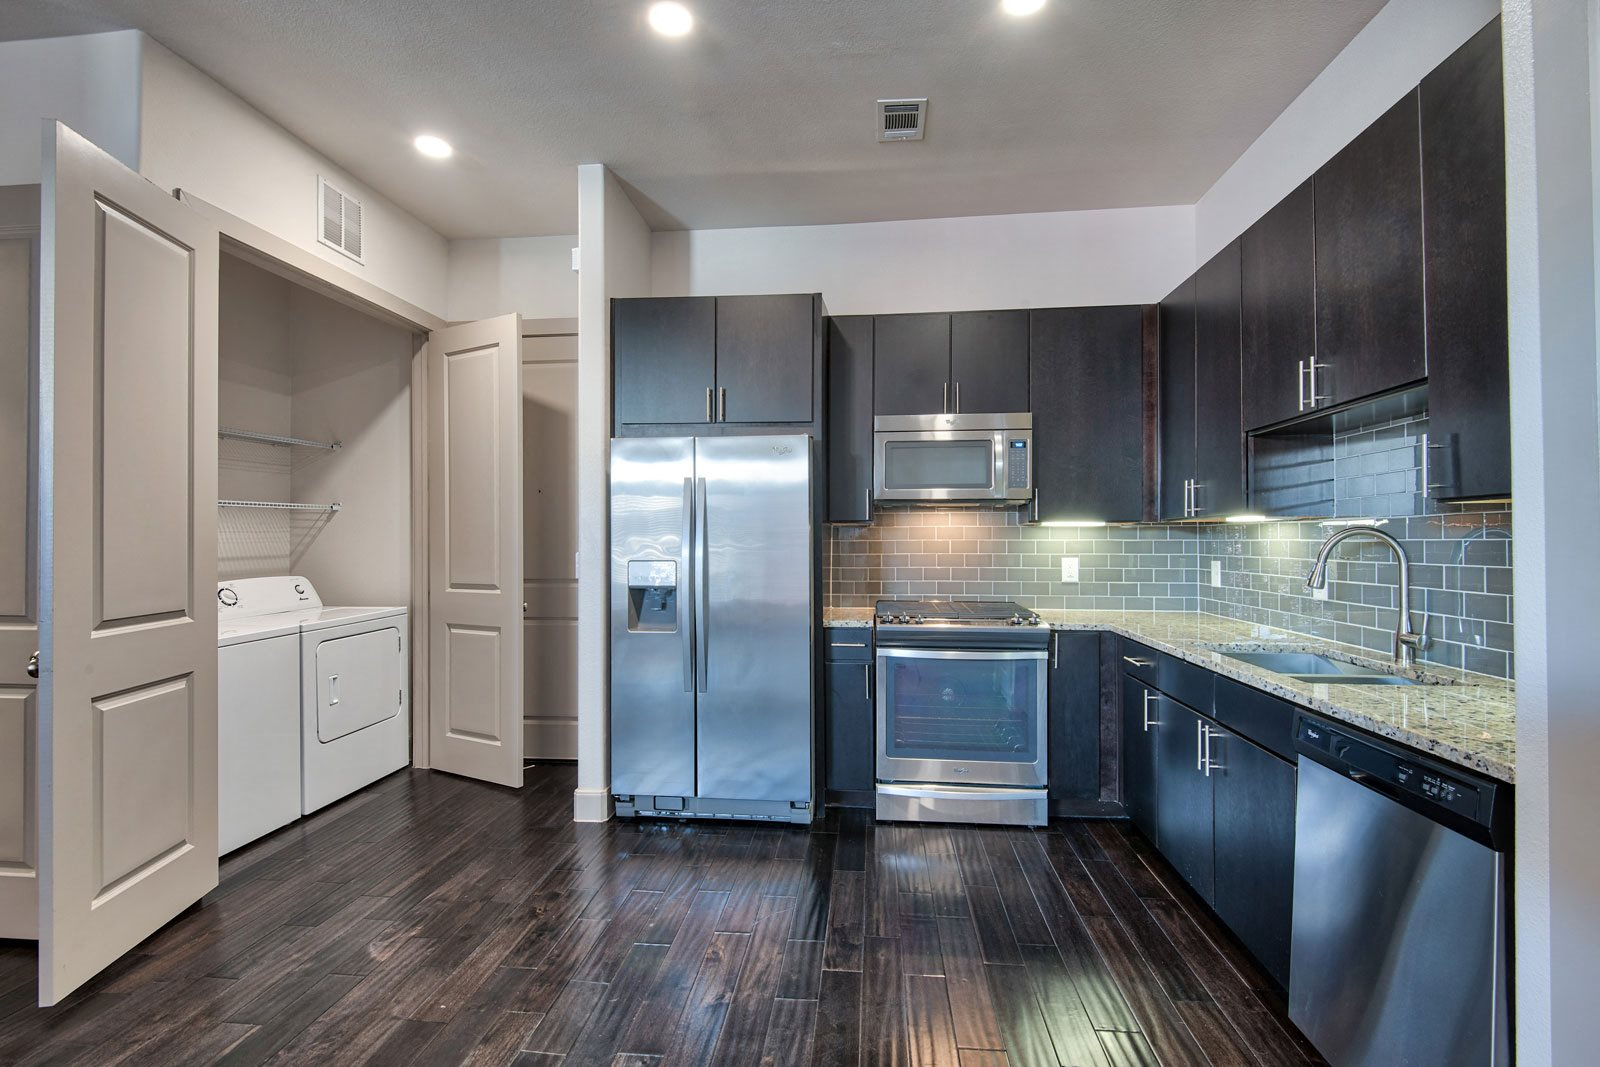 Gourmet Kitchen with Stainless Steel Appliances at Midtown Houston by Windsor, Houston, TX